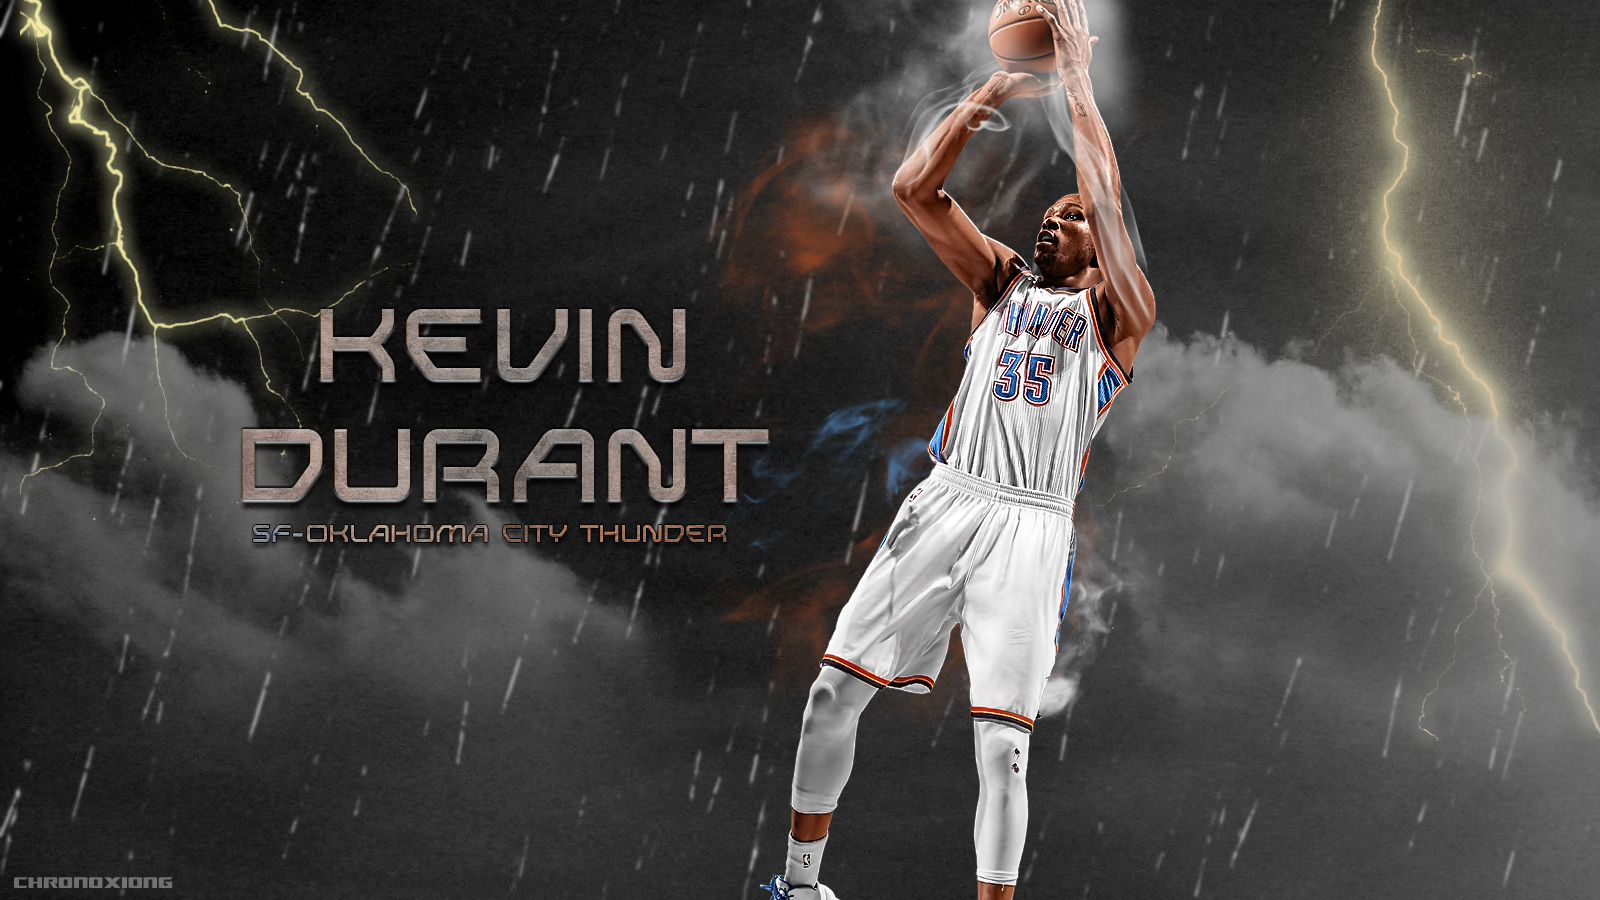 Kevin Durant Wallpaper HD Wallpaper Sports Wallpapers 1600x900